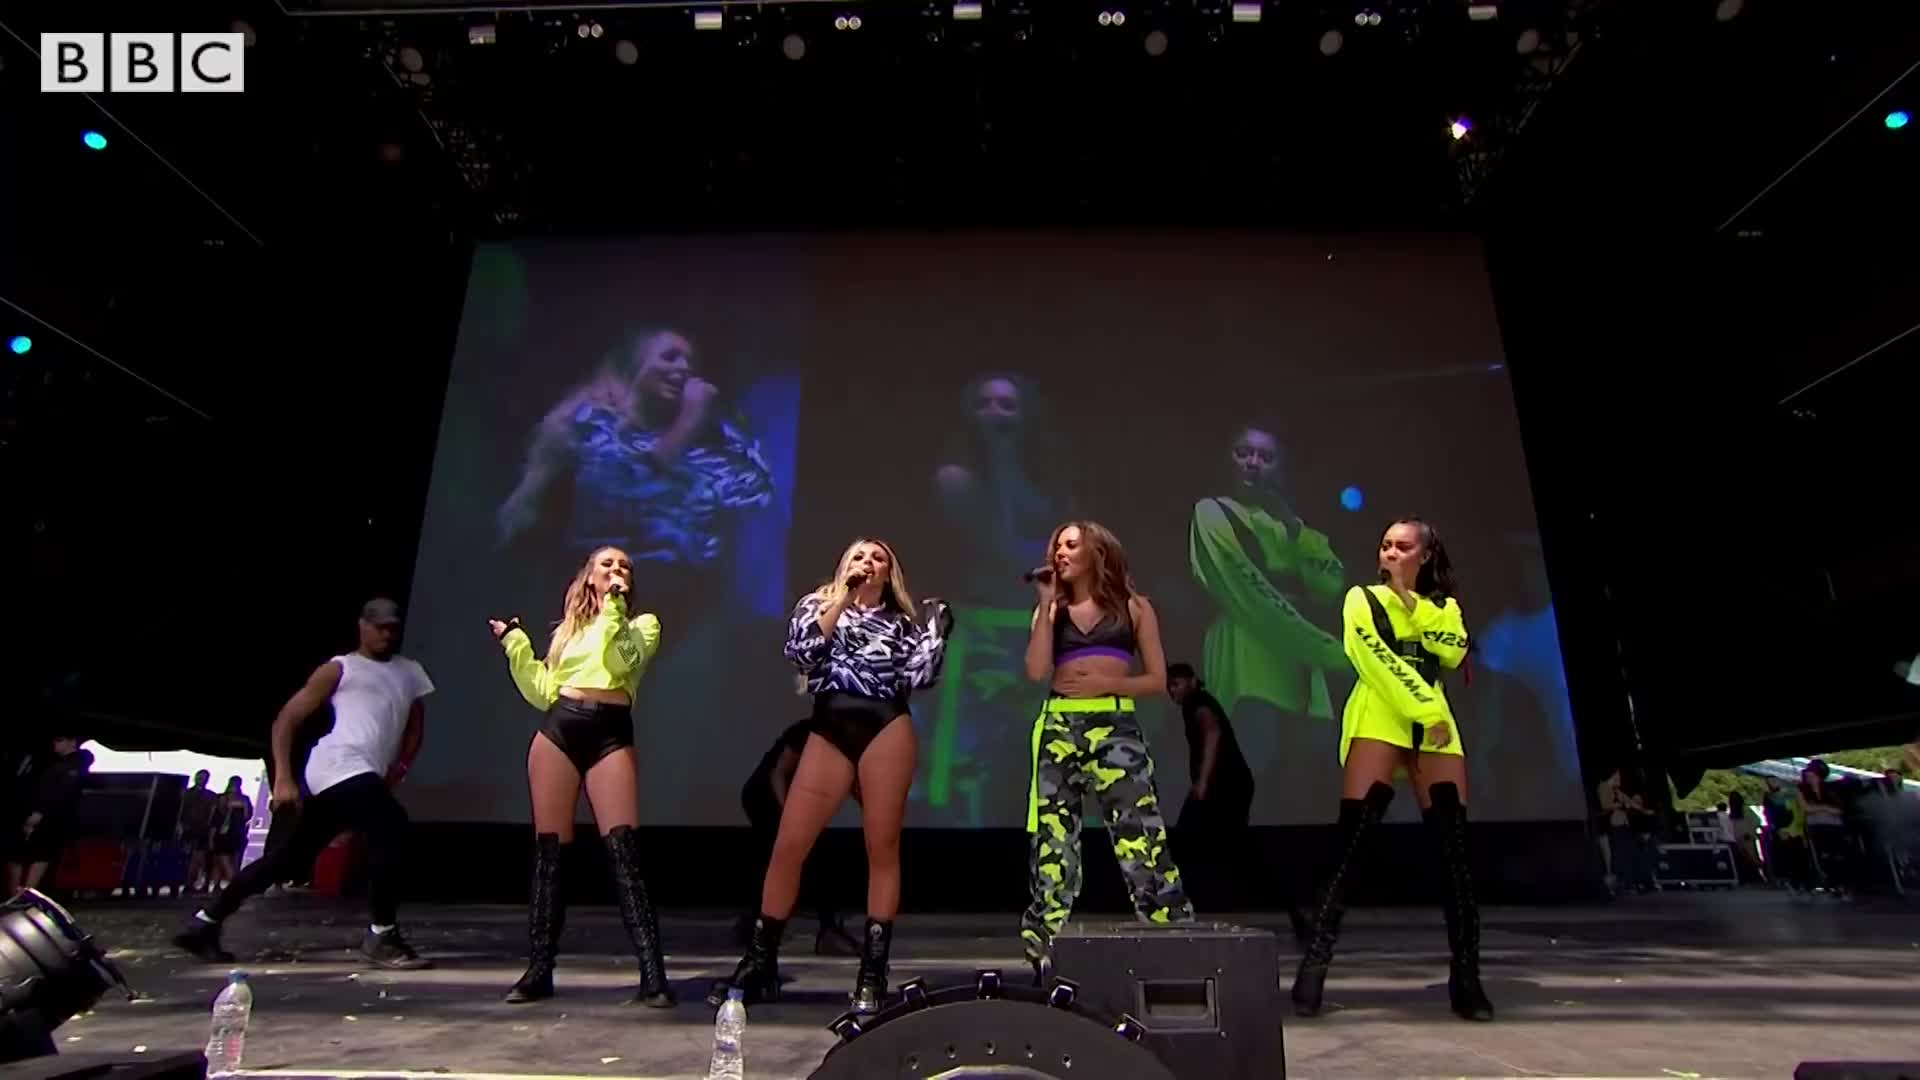 Little Mix, R1BW, Touch, bbc, big weekend, radio 1's big weekend, Little Mix - Touch (Radio 1's Big Weekend 2017) GIFs